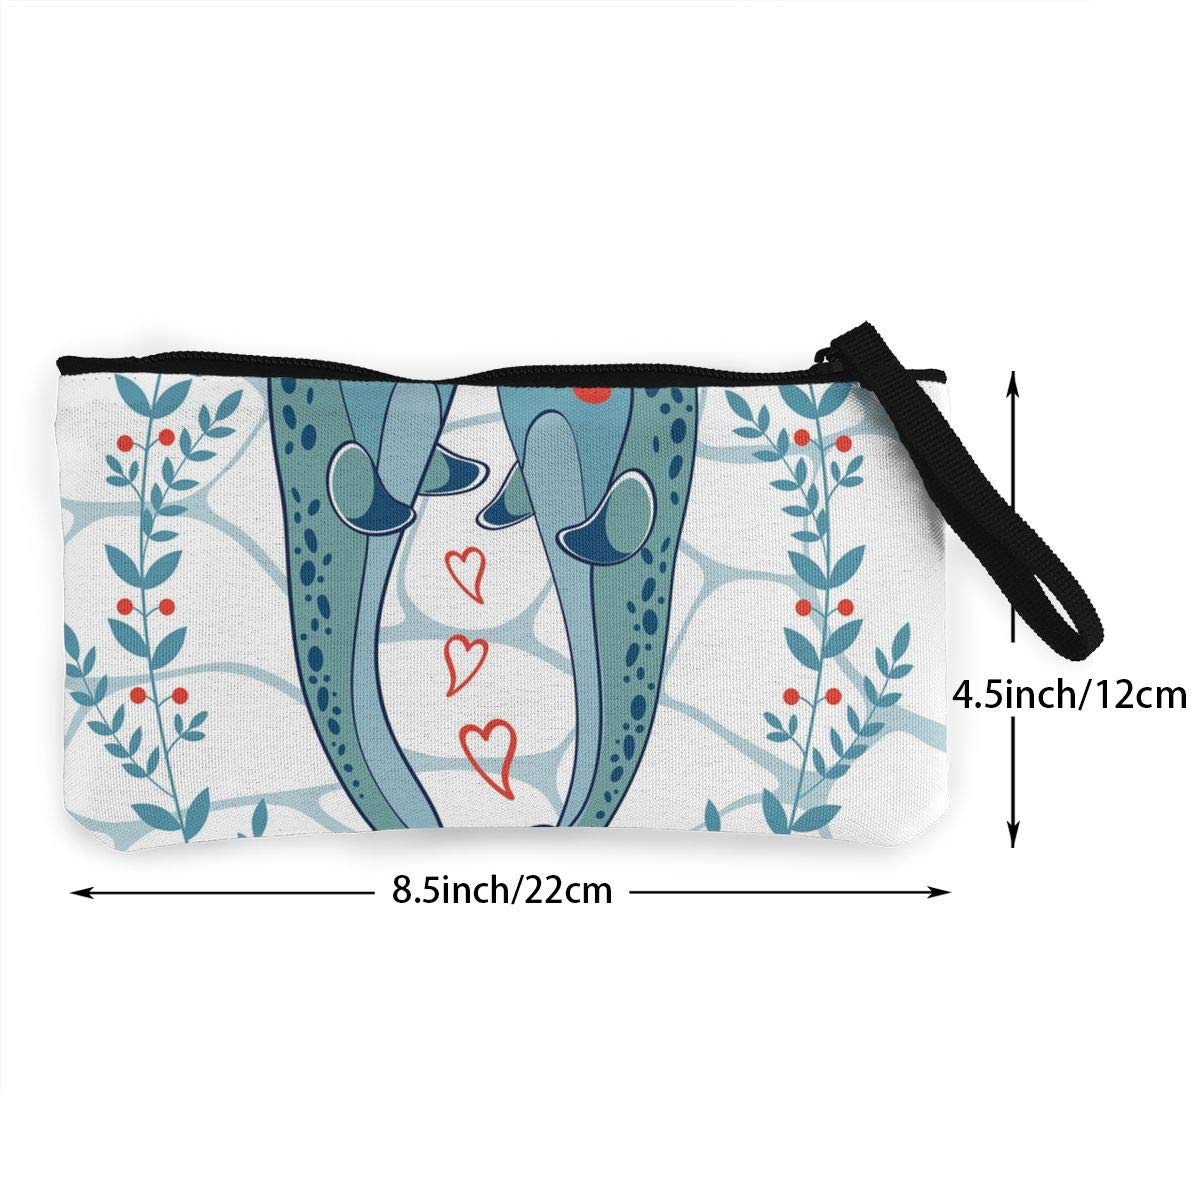 Maple Memories Valentines Day Whale Love Portable Canvas Coin Purse Change Purse Pouch Mini Wallet Gifts For Women Girls